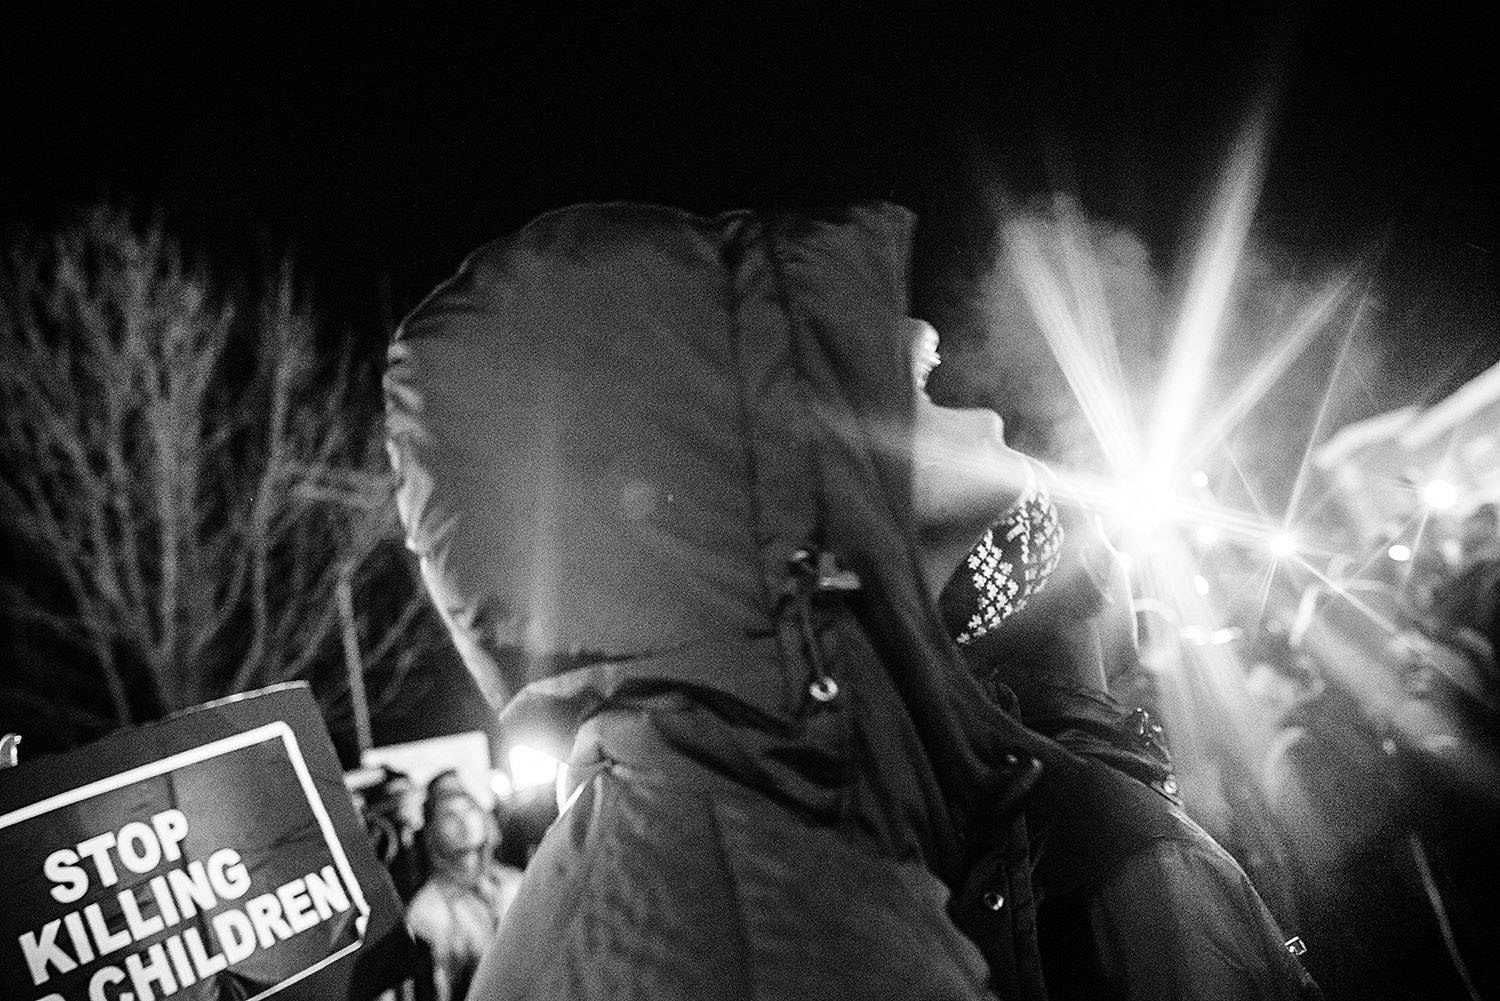 FERGUSON, MO - NOVEMBER 25: A protester screams at the police and National Guard formations protecting the Ferguson police department a night after the riots and destruction that followed the announcement of the grand jury's decision not to indict white police officer Darren Wilson in the death of unarmed black teen Michael Brown. (Photo by Benjamin Lowy/Reportage by Getty Images)